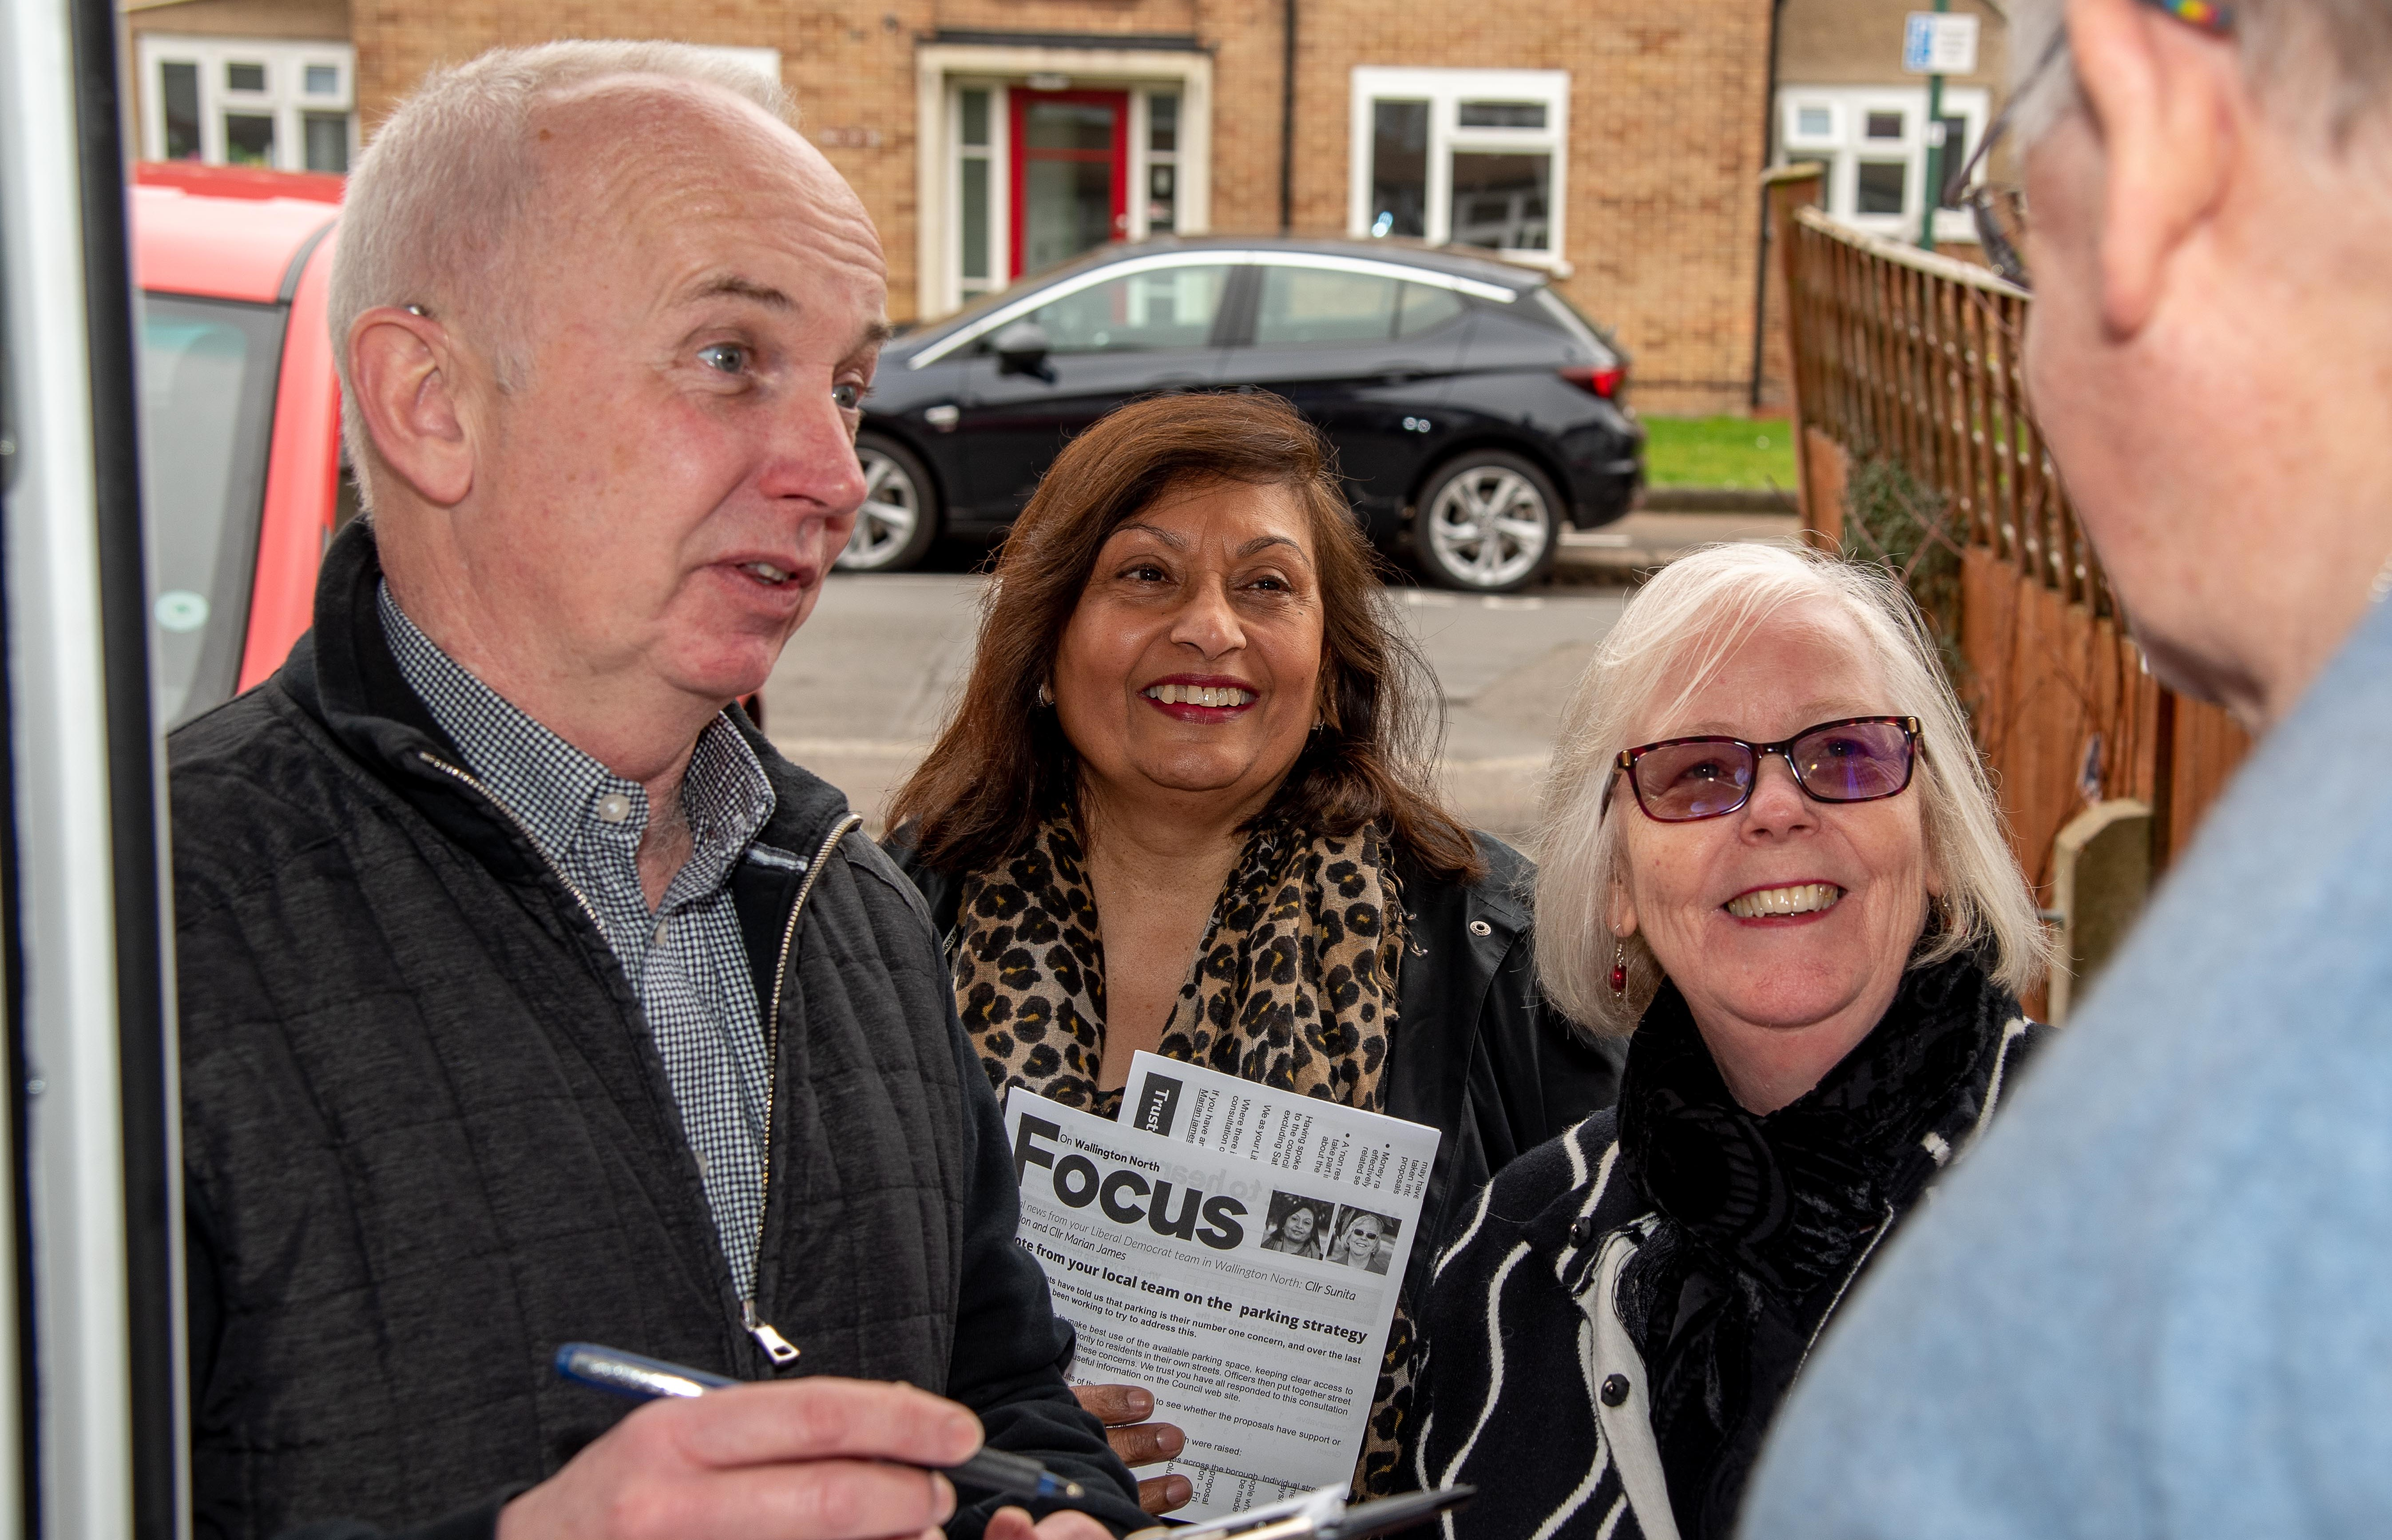 Brake Backs Barry Lewis in the Wallington North By-Election